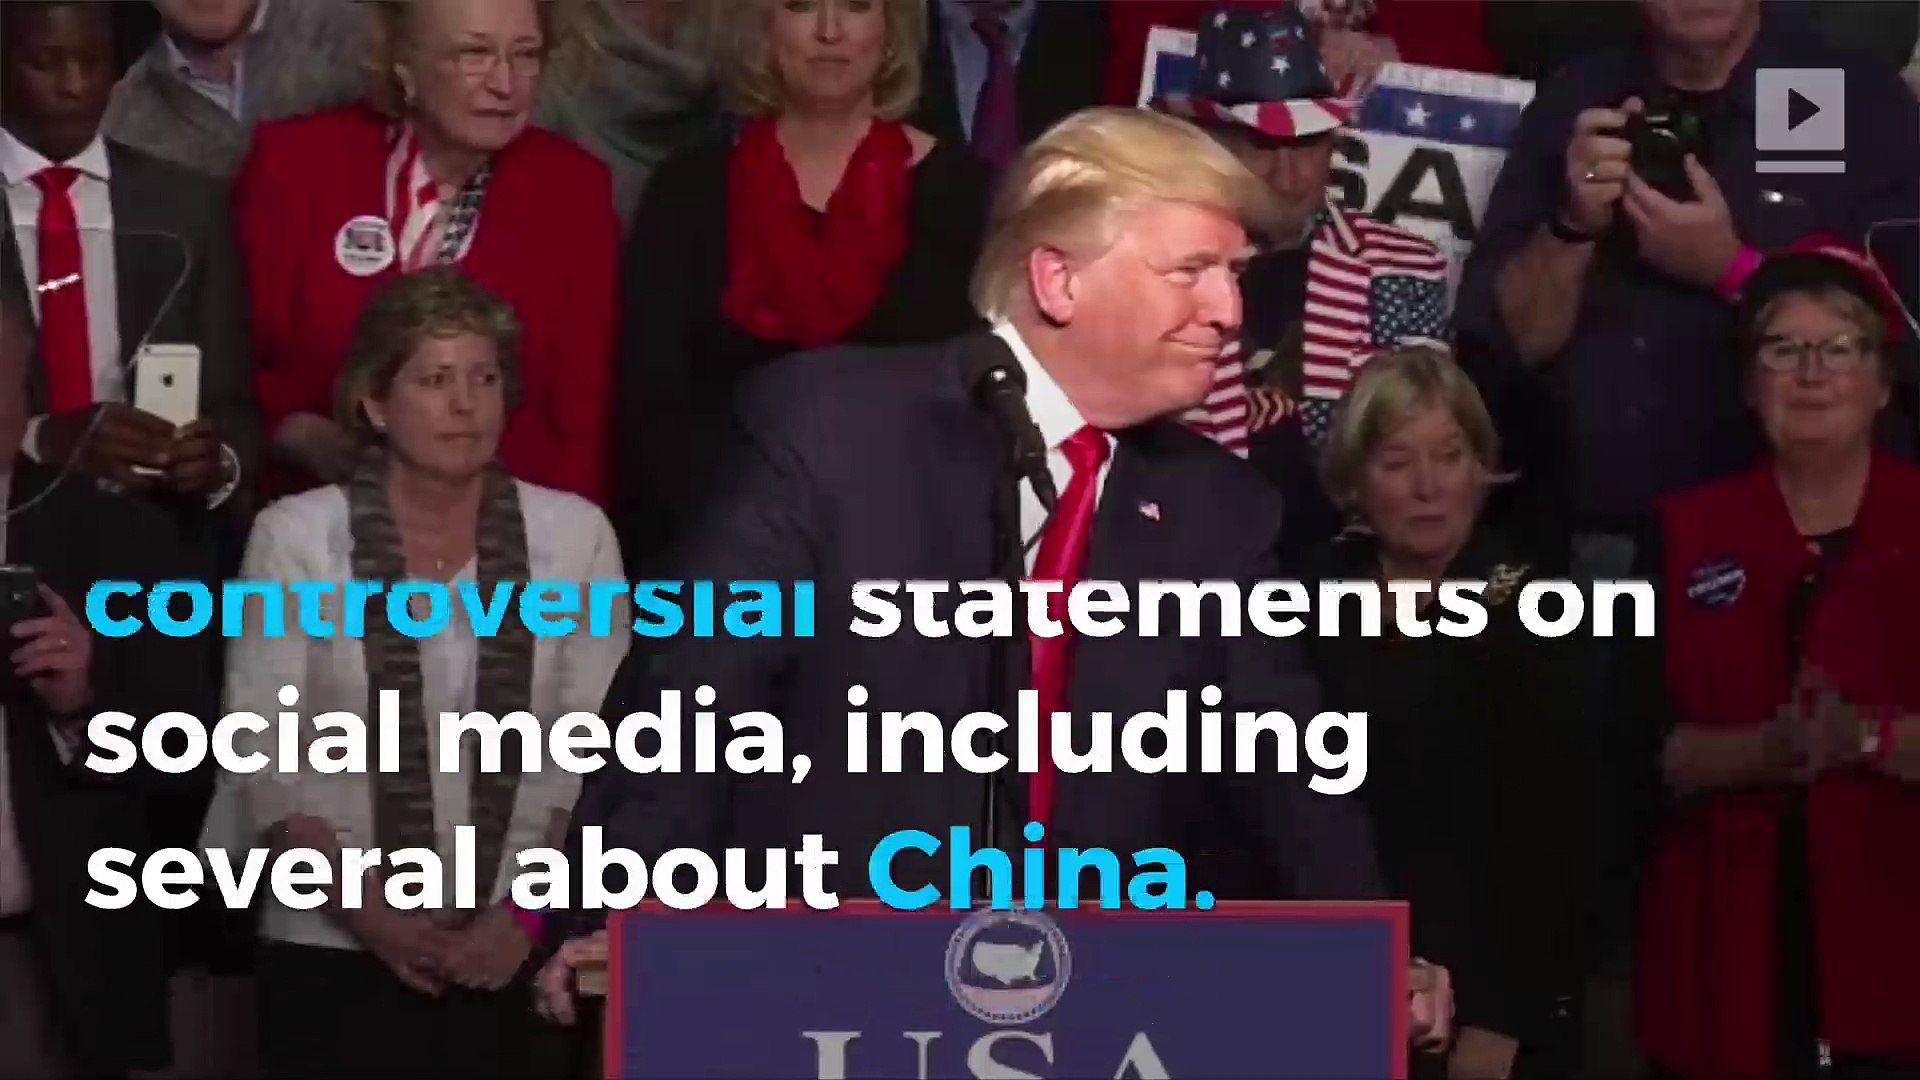 Chinese media tells Trump to get off Twitter